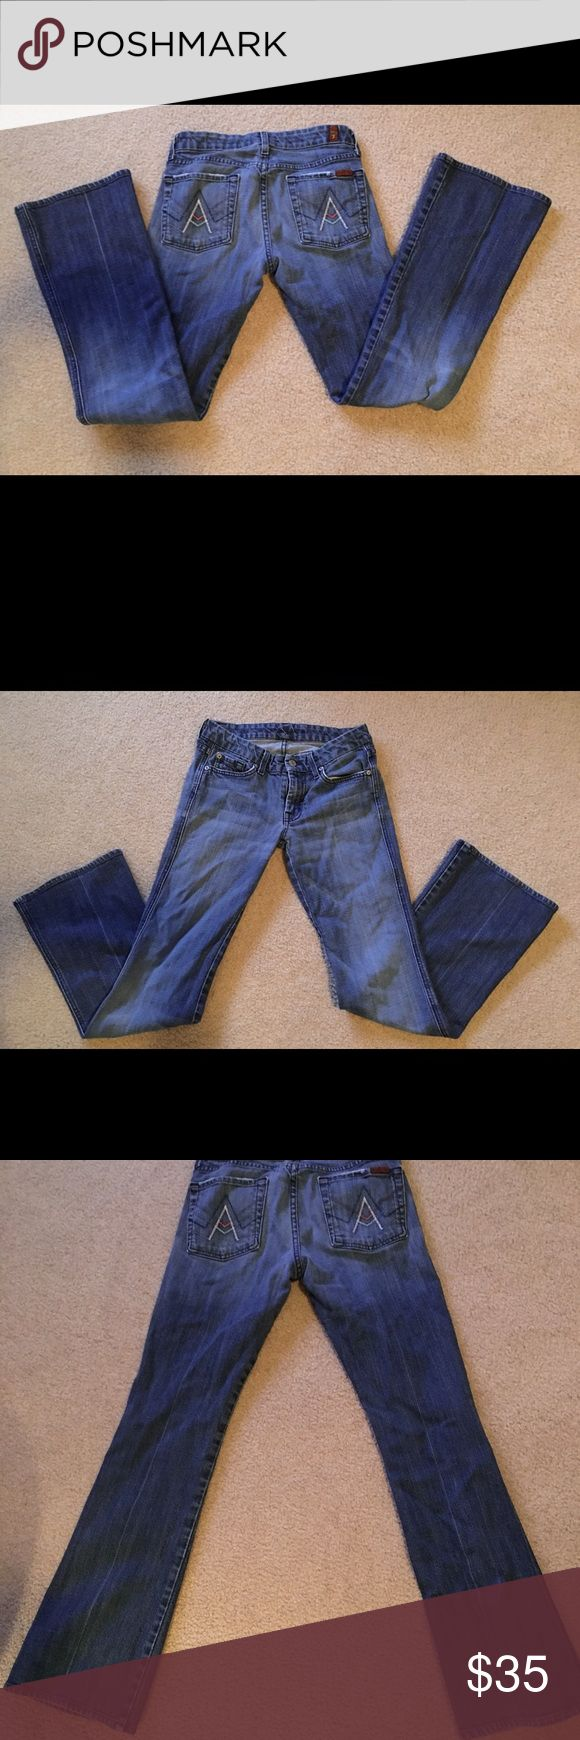 7 Seven For All Mankind Jeans 7 for All Mankind jeans 7 For All Mankind Jeans